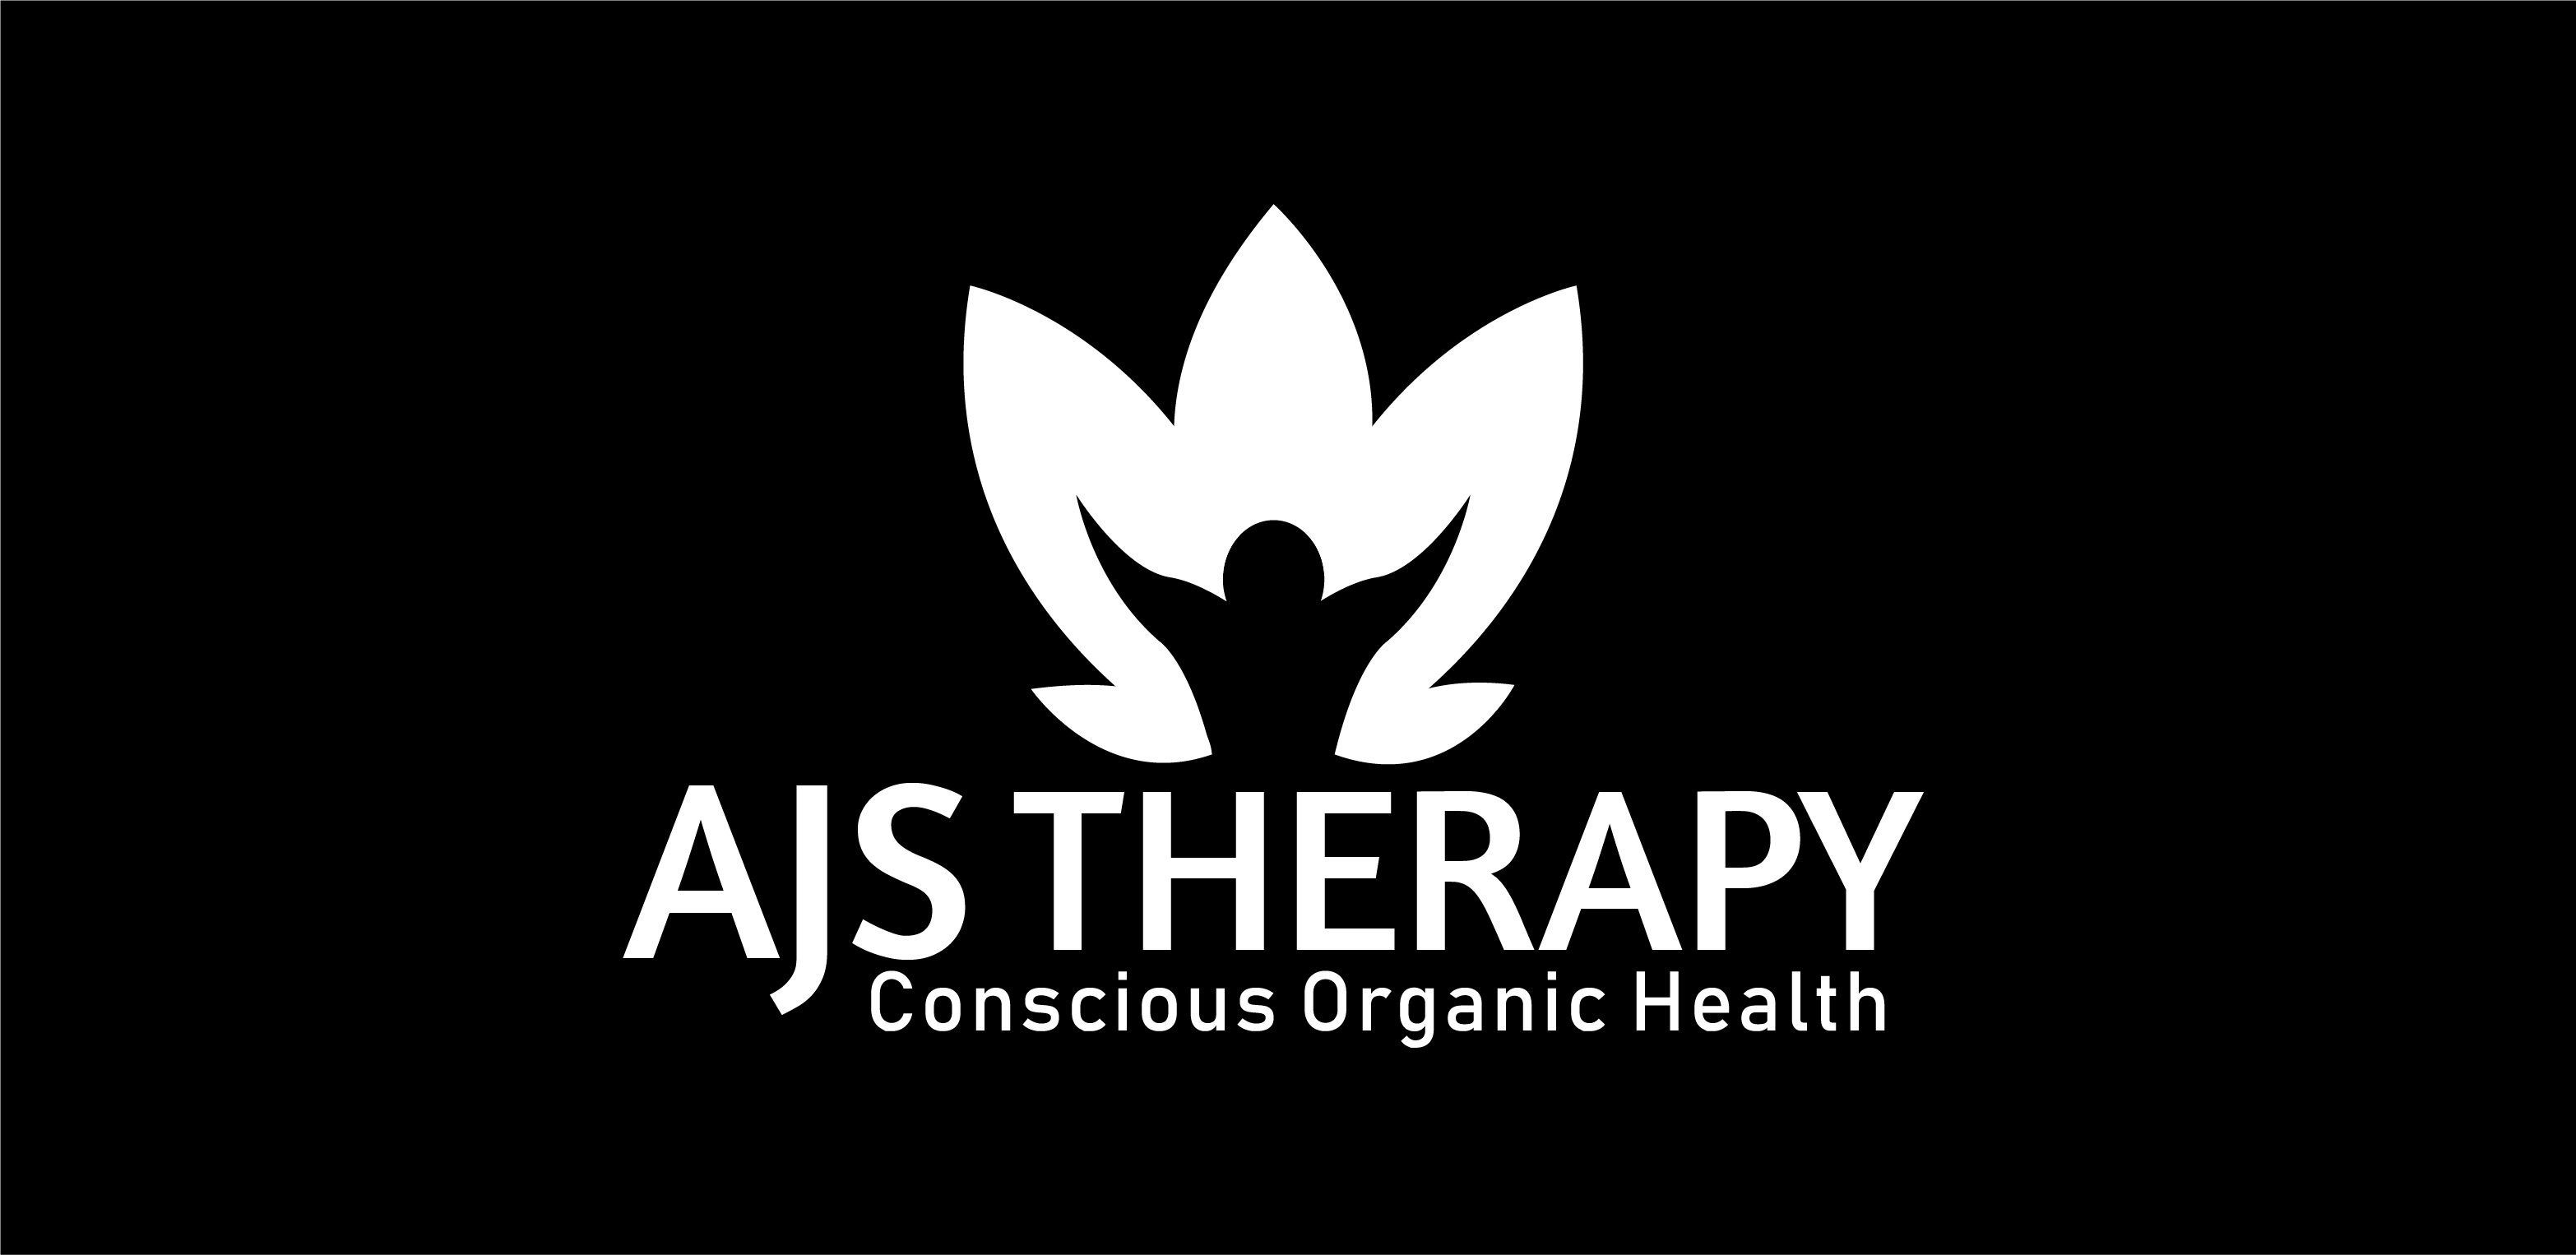 AJS Therapy